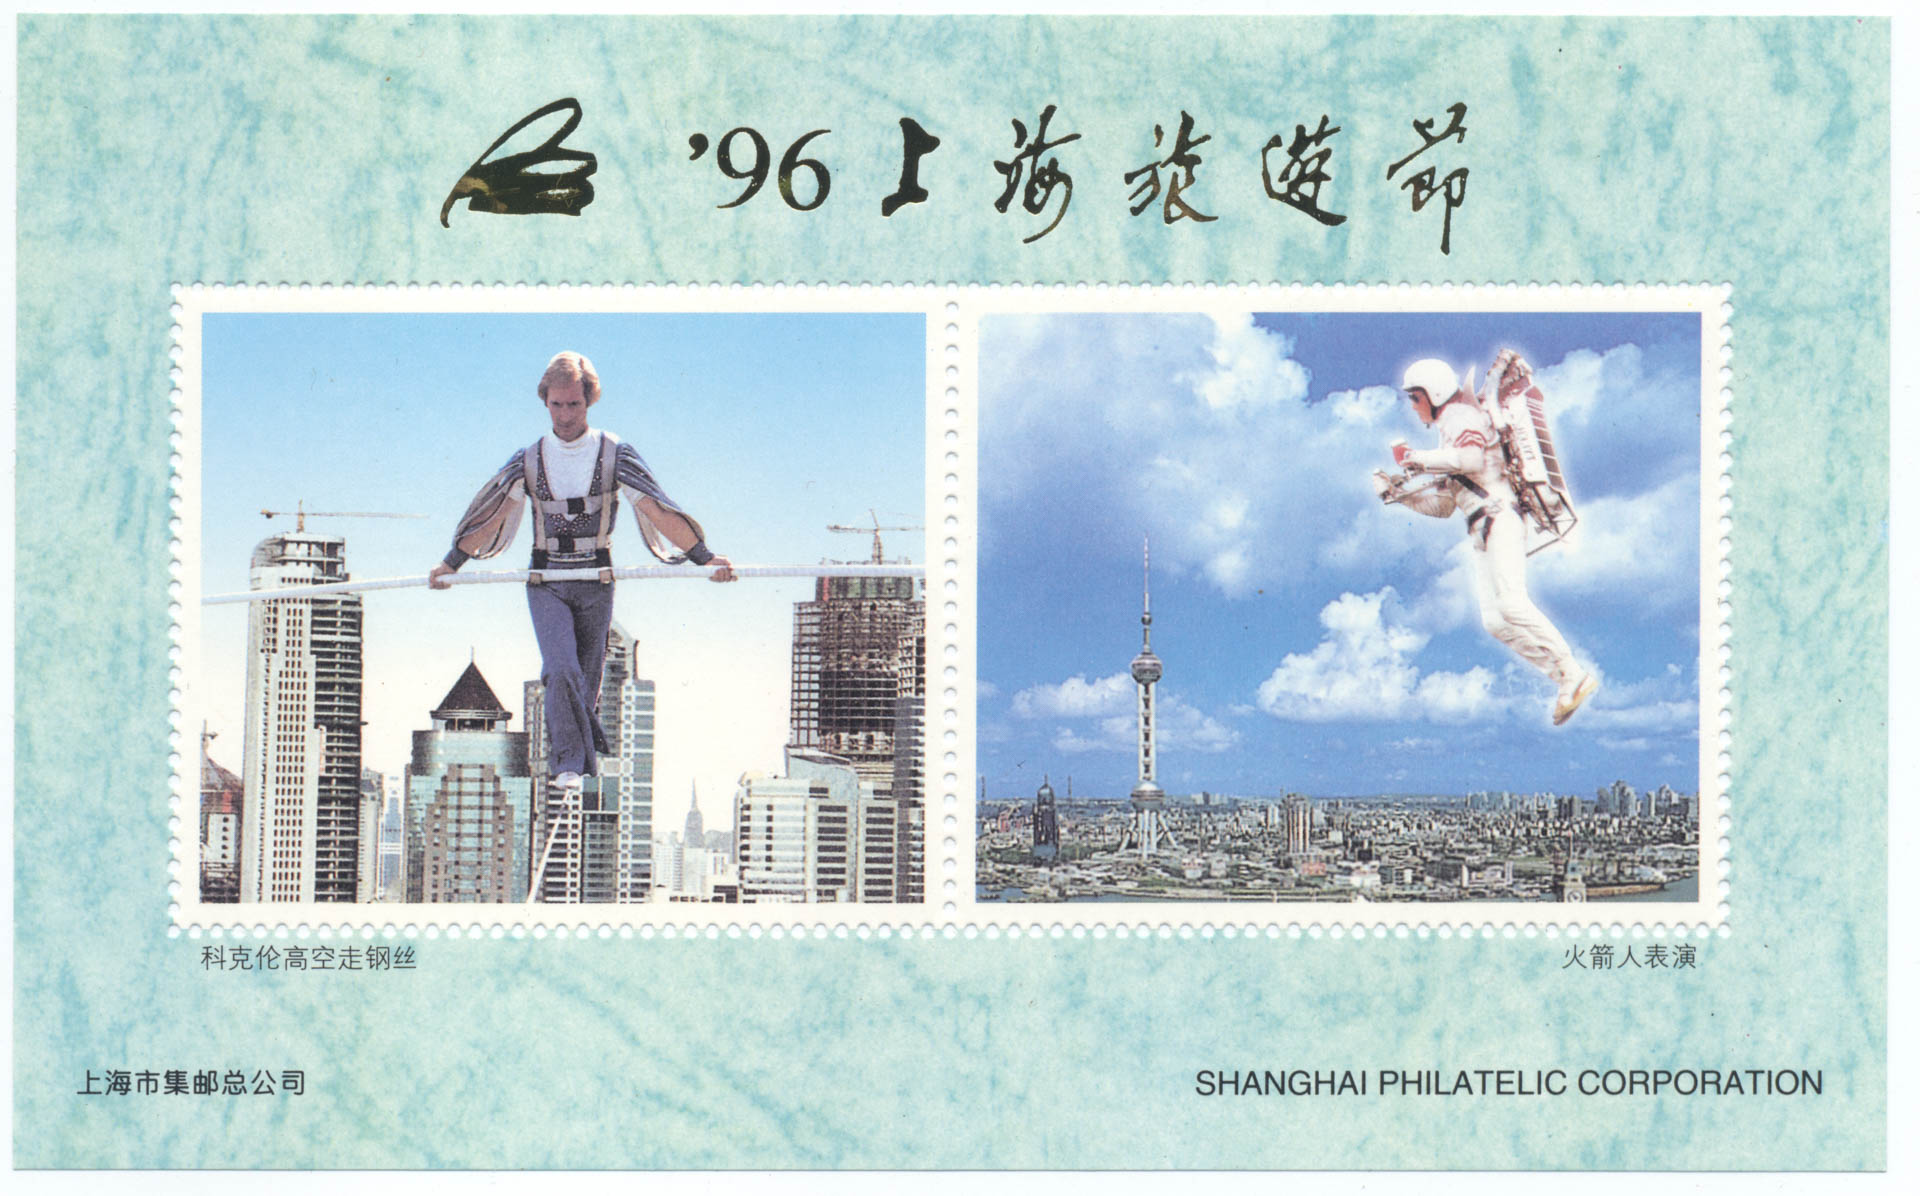 Jay Cochrane collectibles from China, Shanghai Tourism Festival Stamp 1996